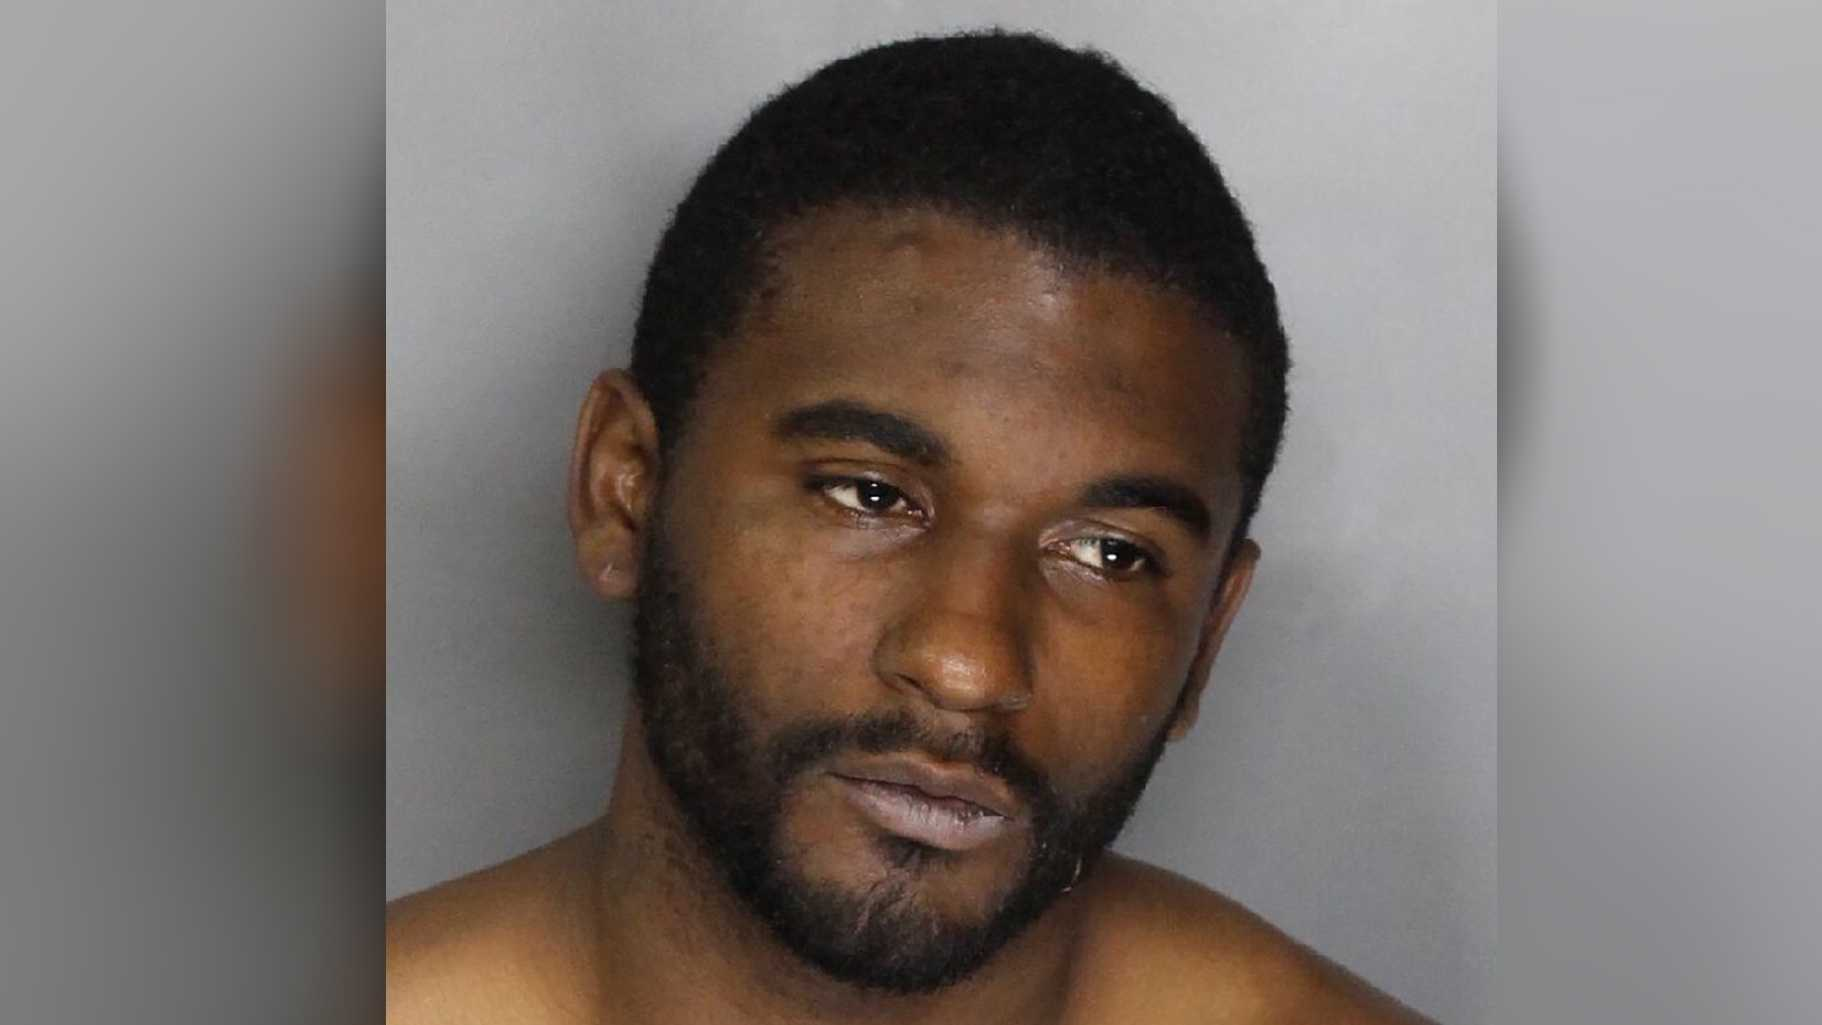 Edward Robinson, 26, led police on a car chase before he was arrested in south Sacramento.